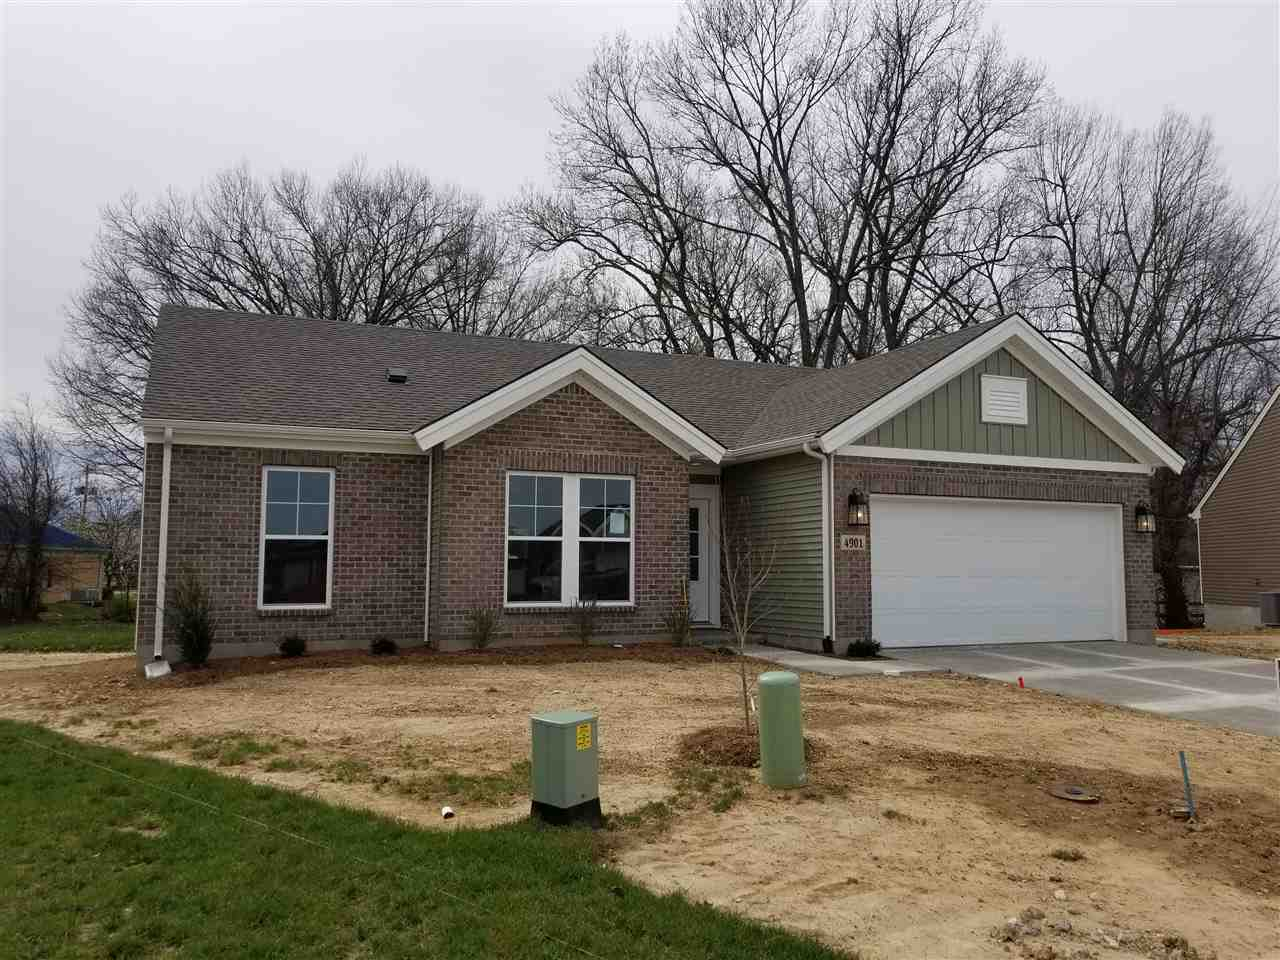 4901 Mustang Drive Evansville, IN 47715 | MLS 201804526 Photo 1